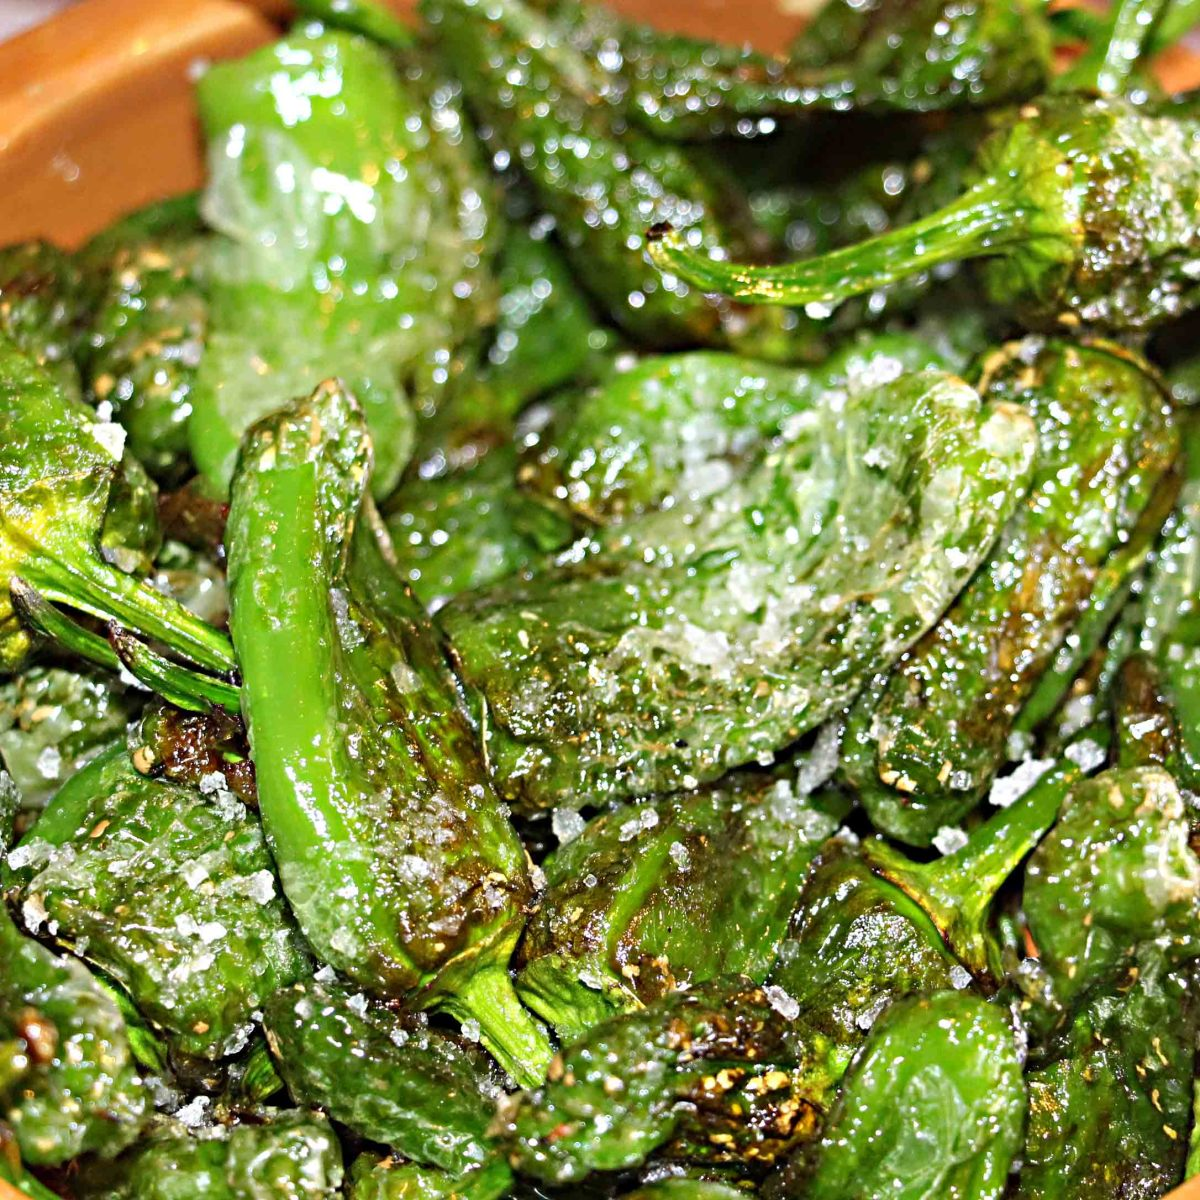 A local Canarian dish - Pimento del Padron (salted sweet peppers) which I always order when visiting any of the Canary islands. Even though I'm not vegetarian, I love it!